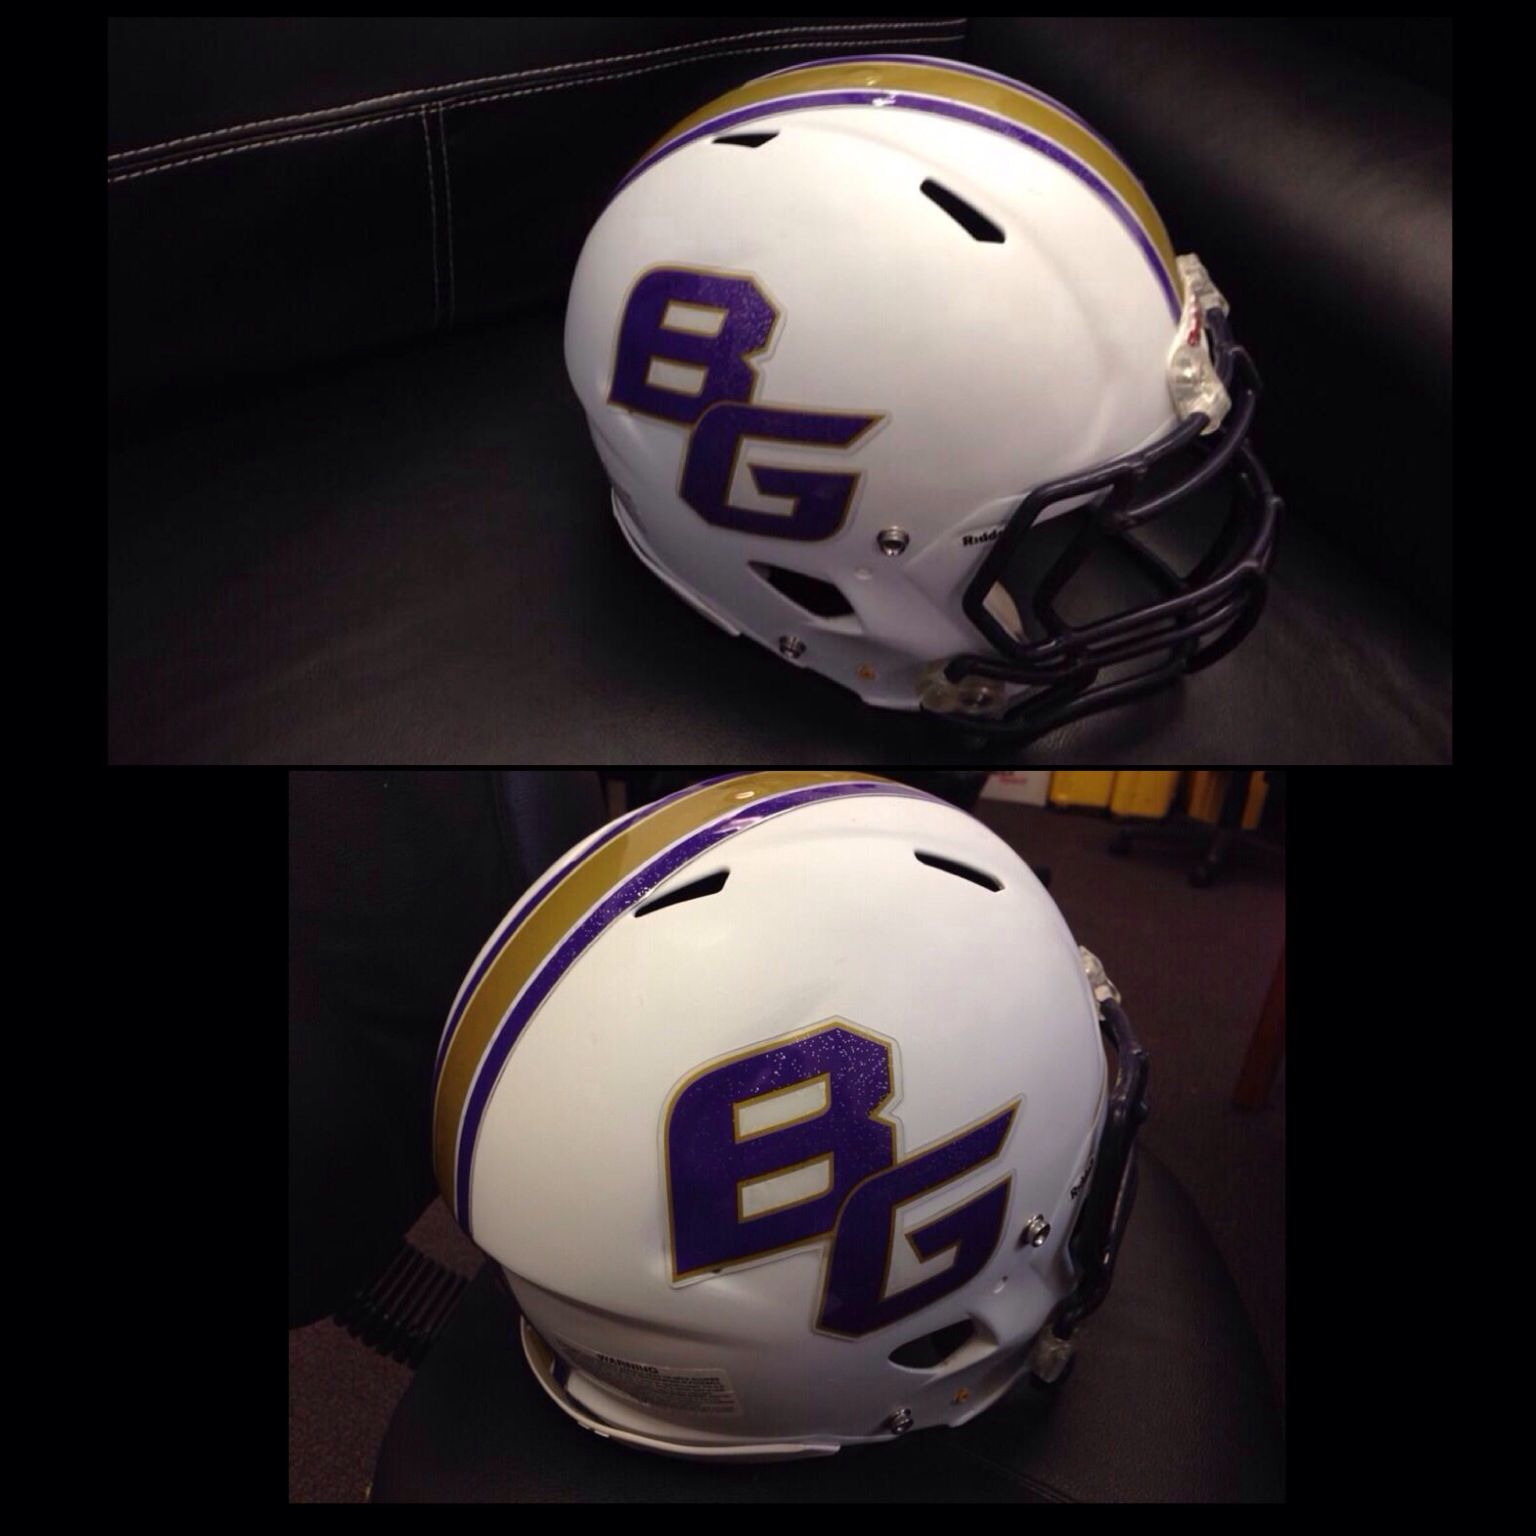 Guilfoyle High School Football will be unveiling